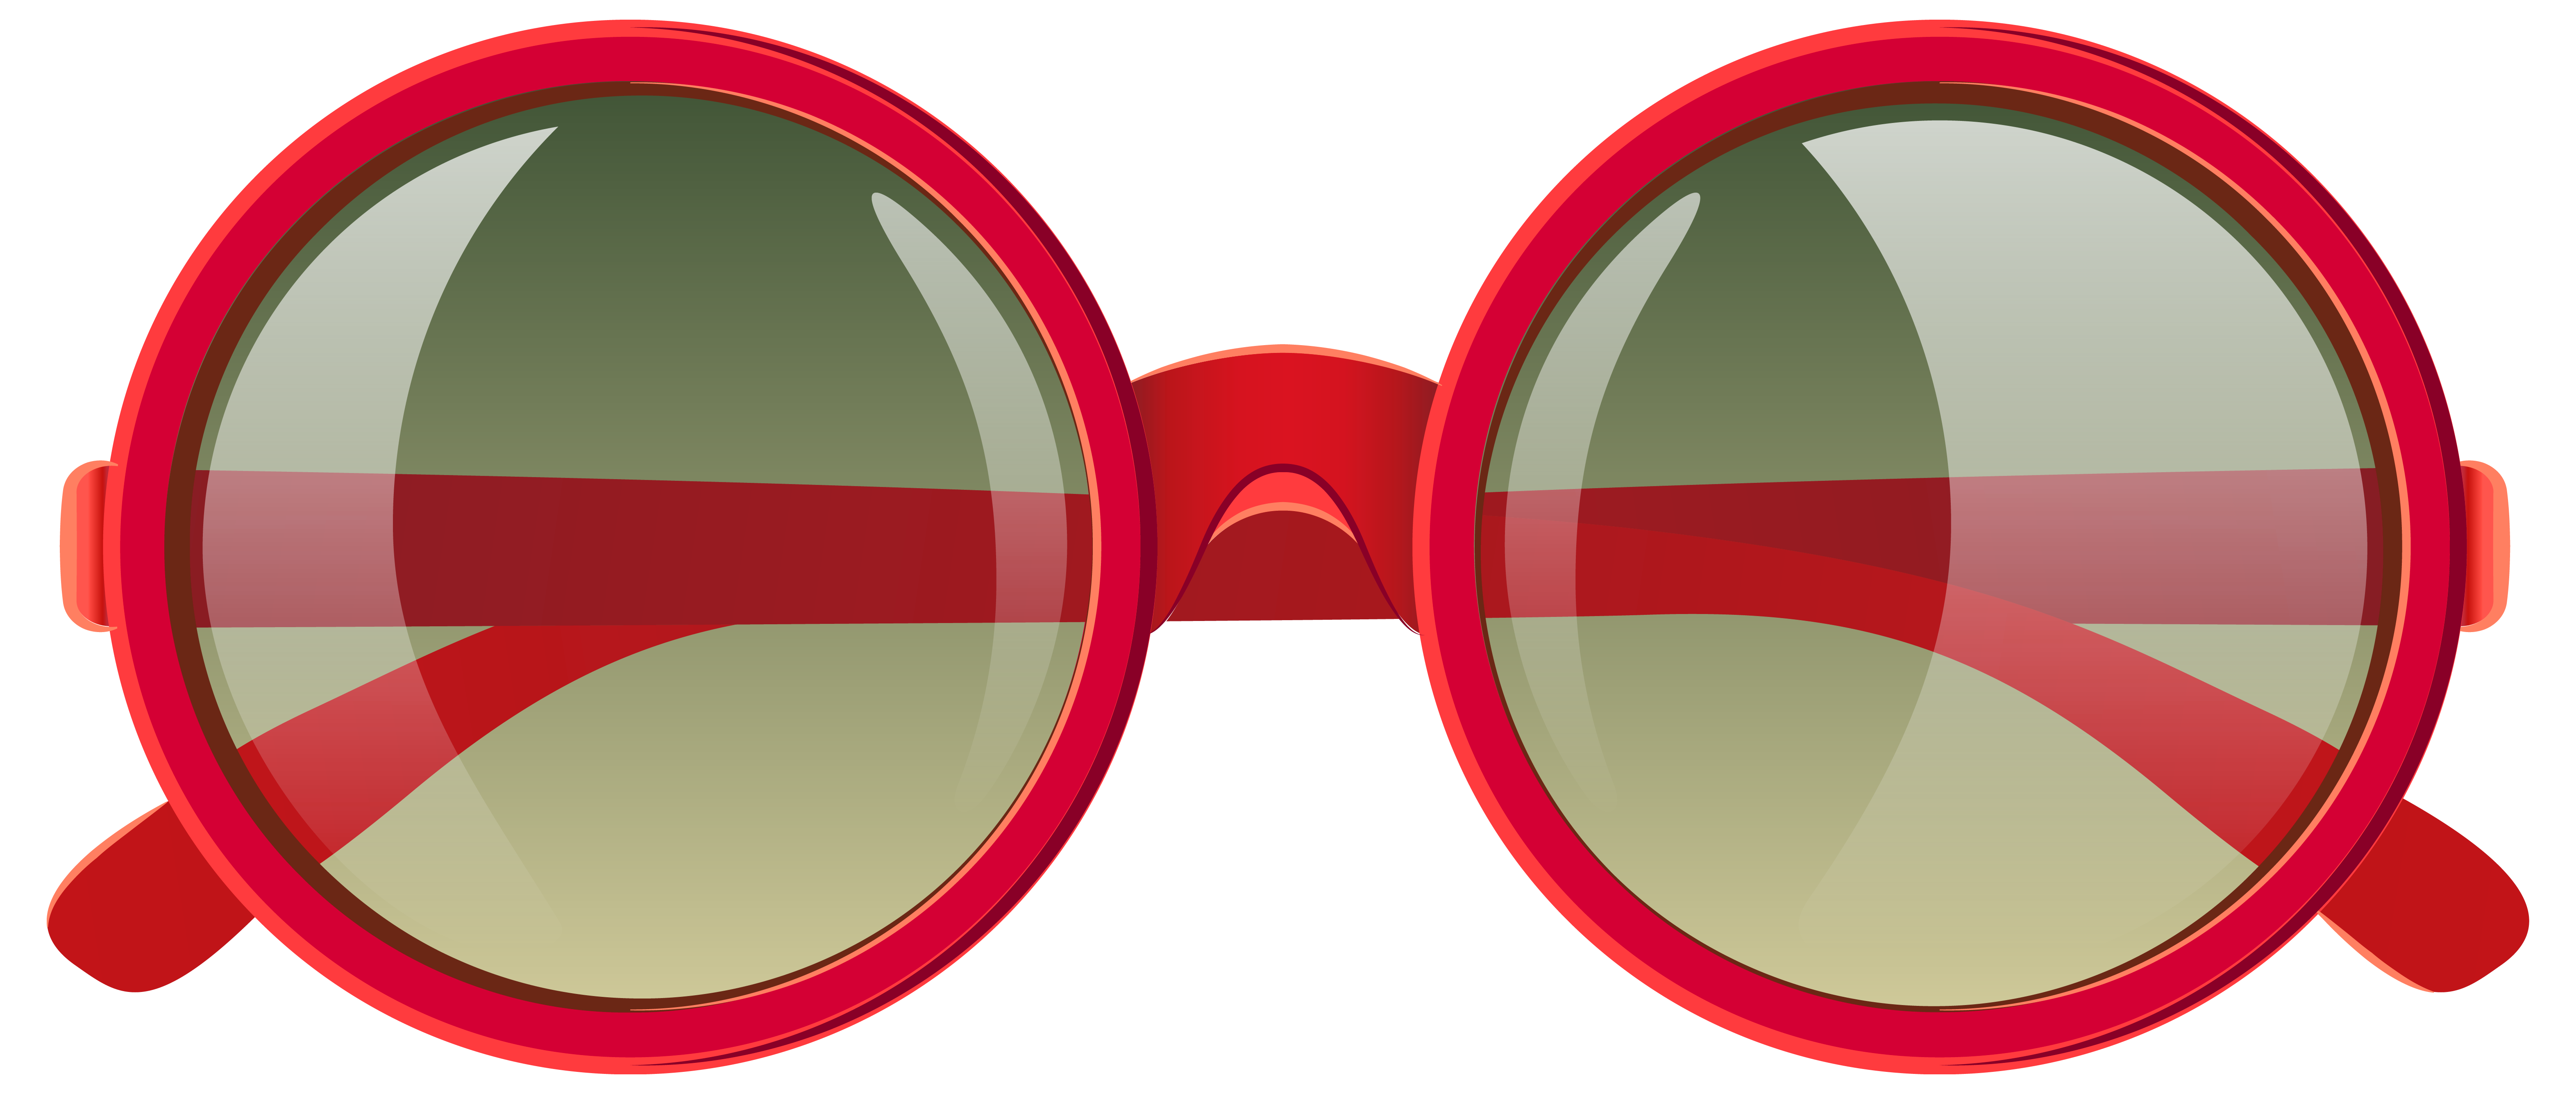 Sunglasses Free Png Image PNG Image